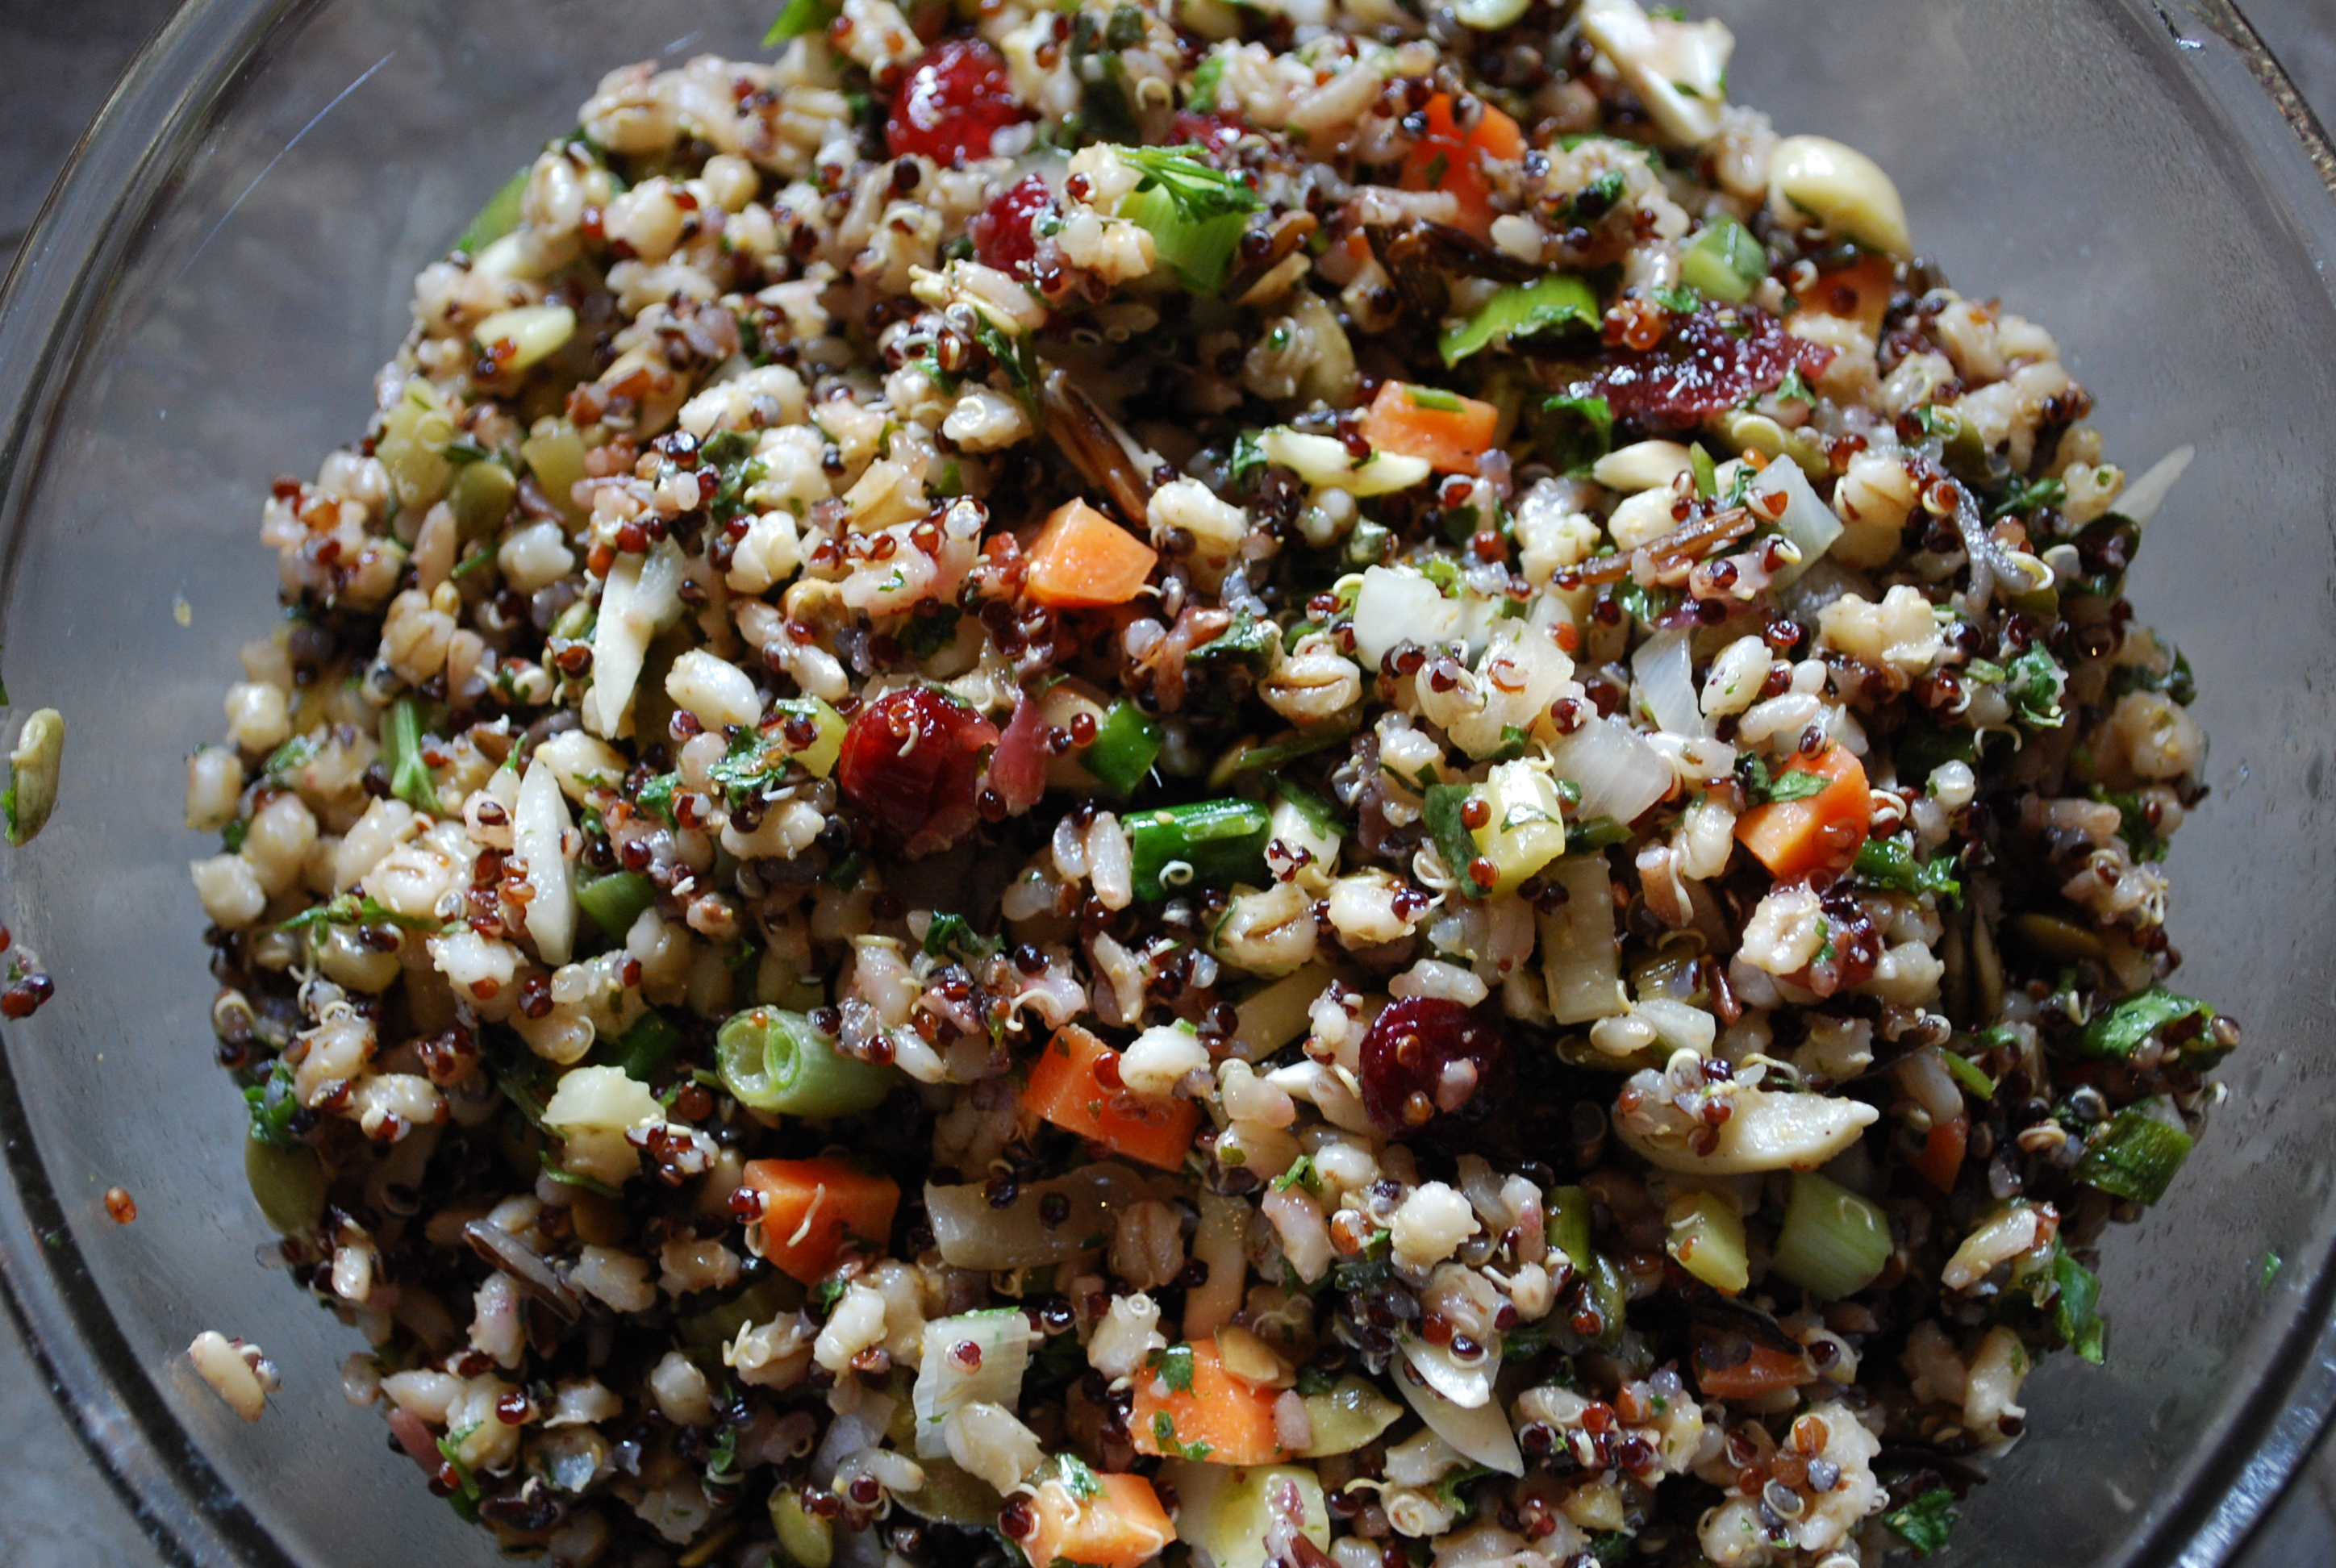 Rice Barley And Quinoa Salad With Cranberries And Nuts V